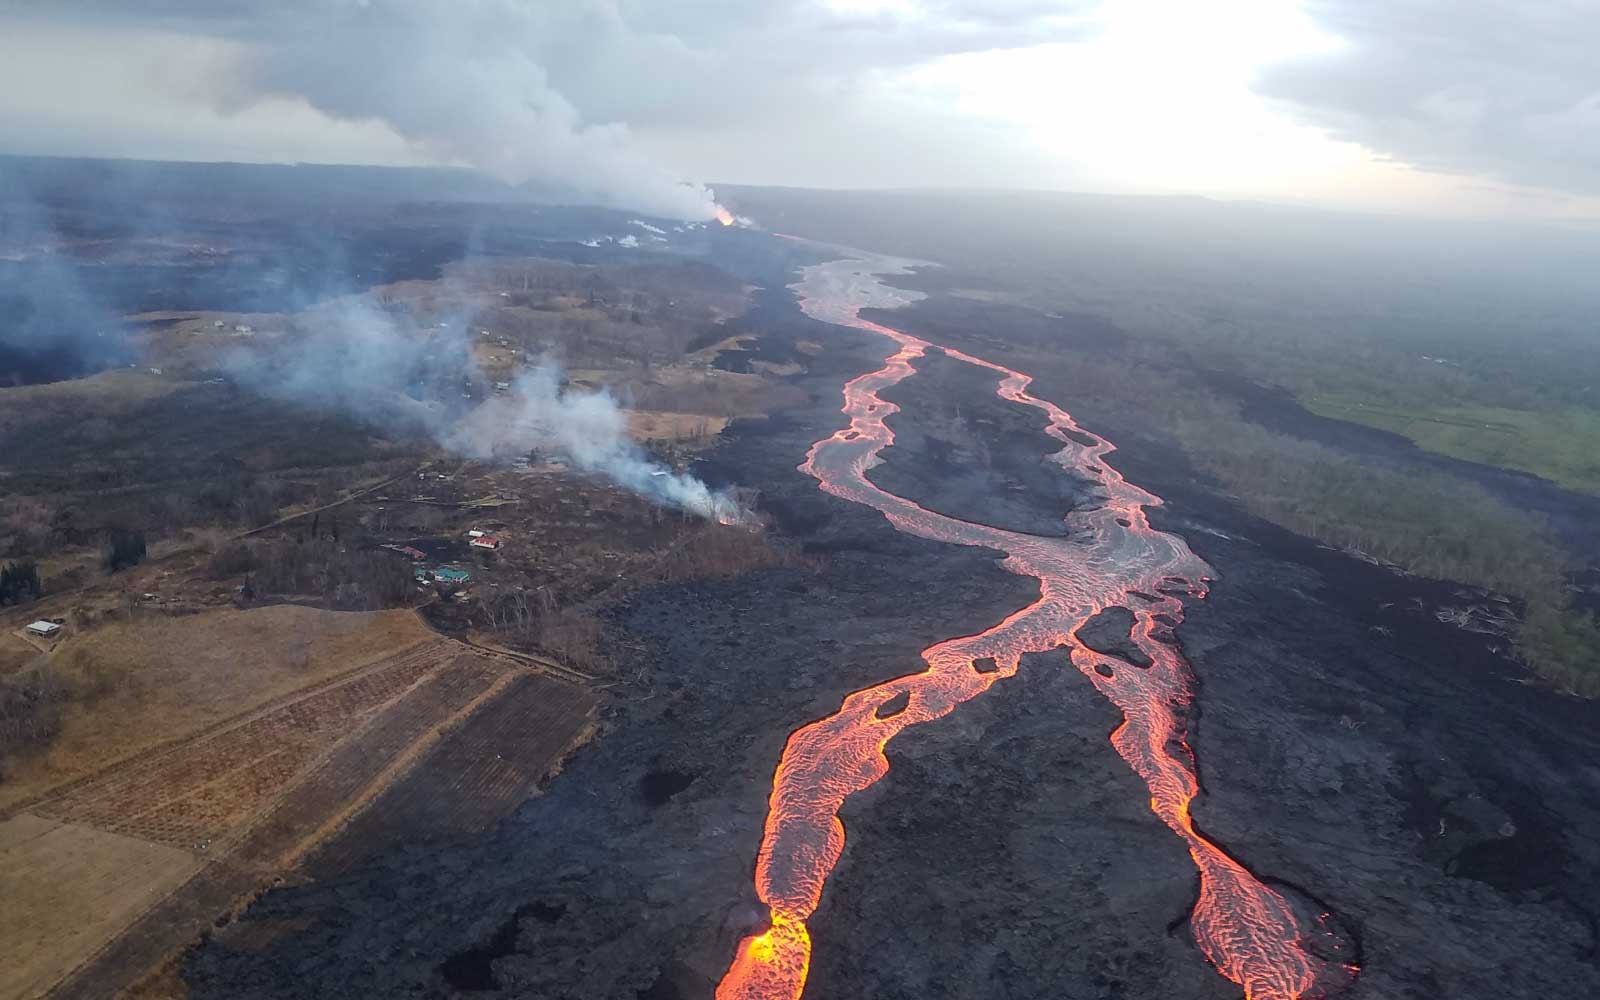 Laws flows from Kilauea eruption